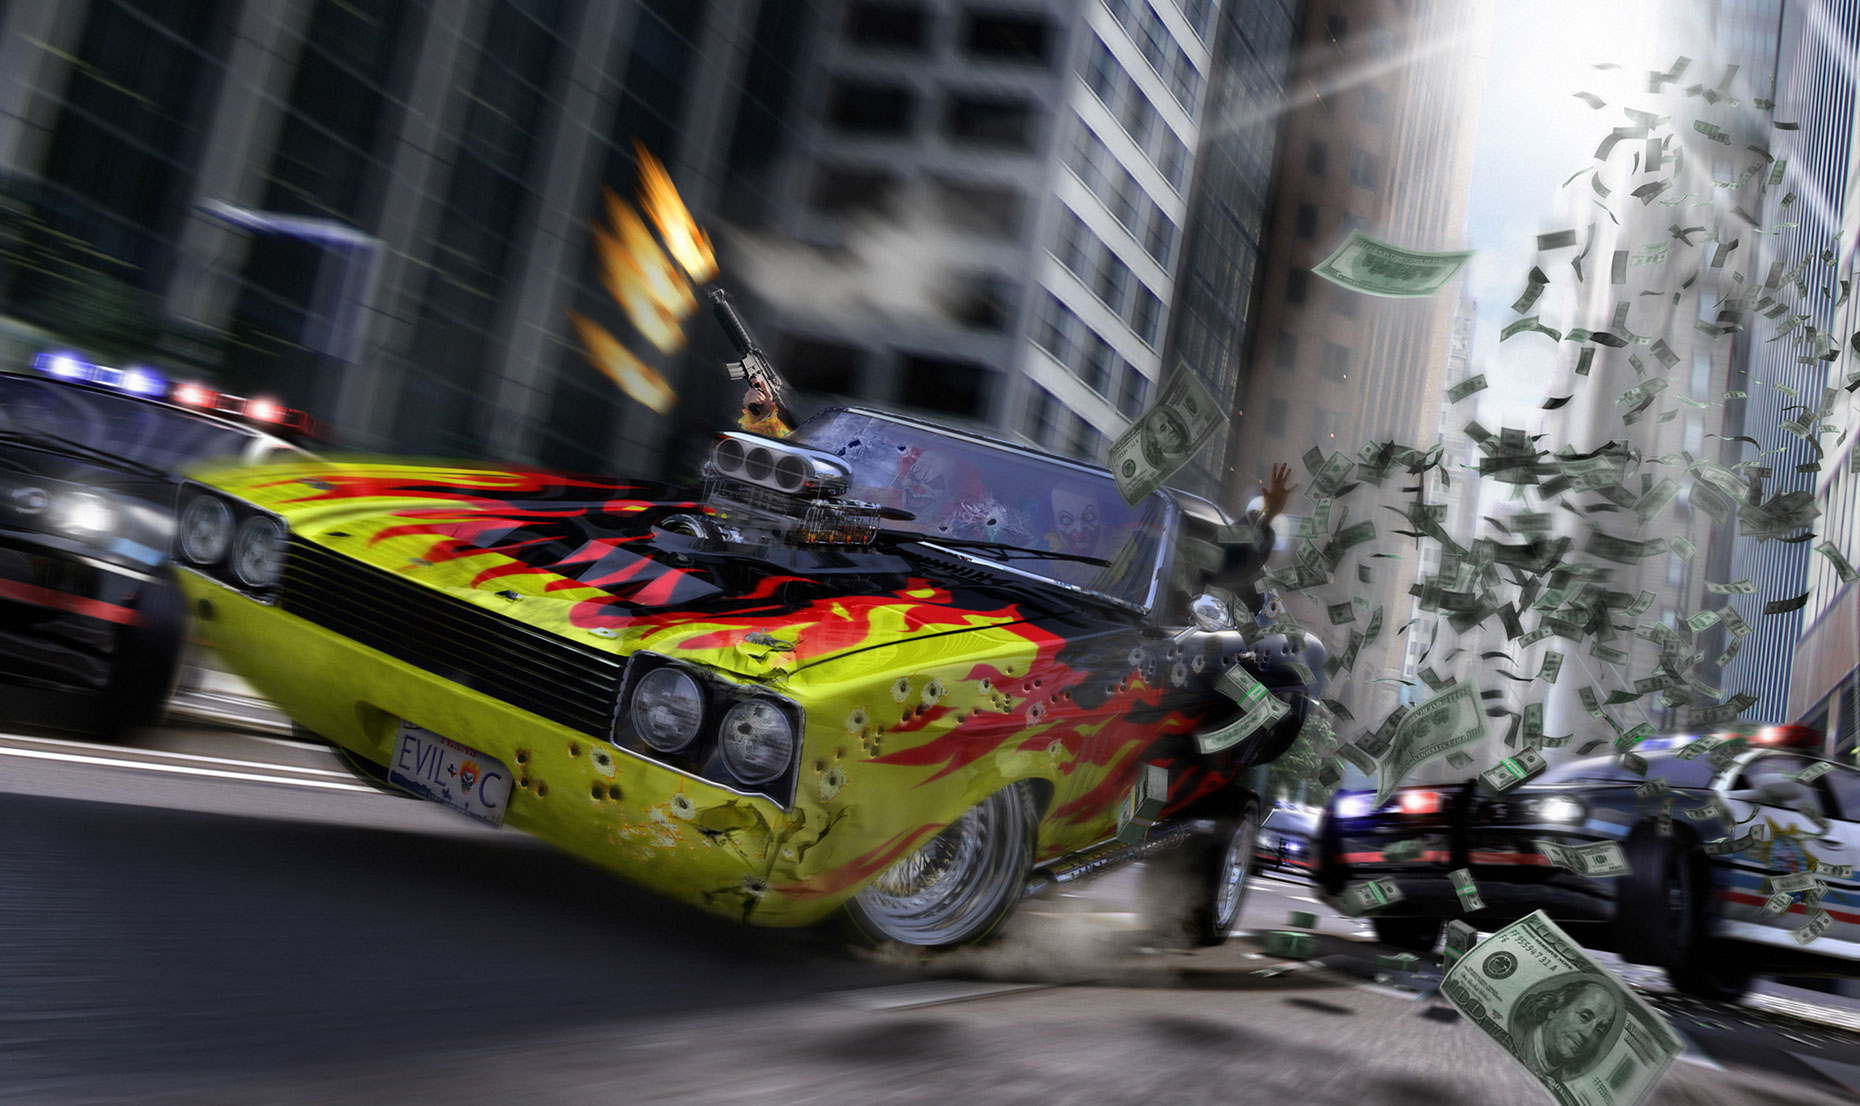 photo-imgaing-CGI Cars_High speed chase car with flames-Frank Neidhardt